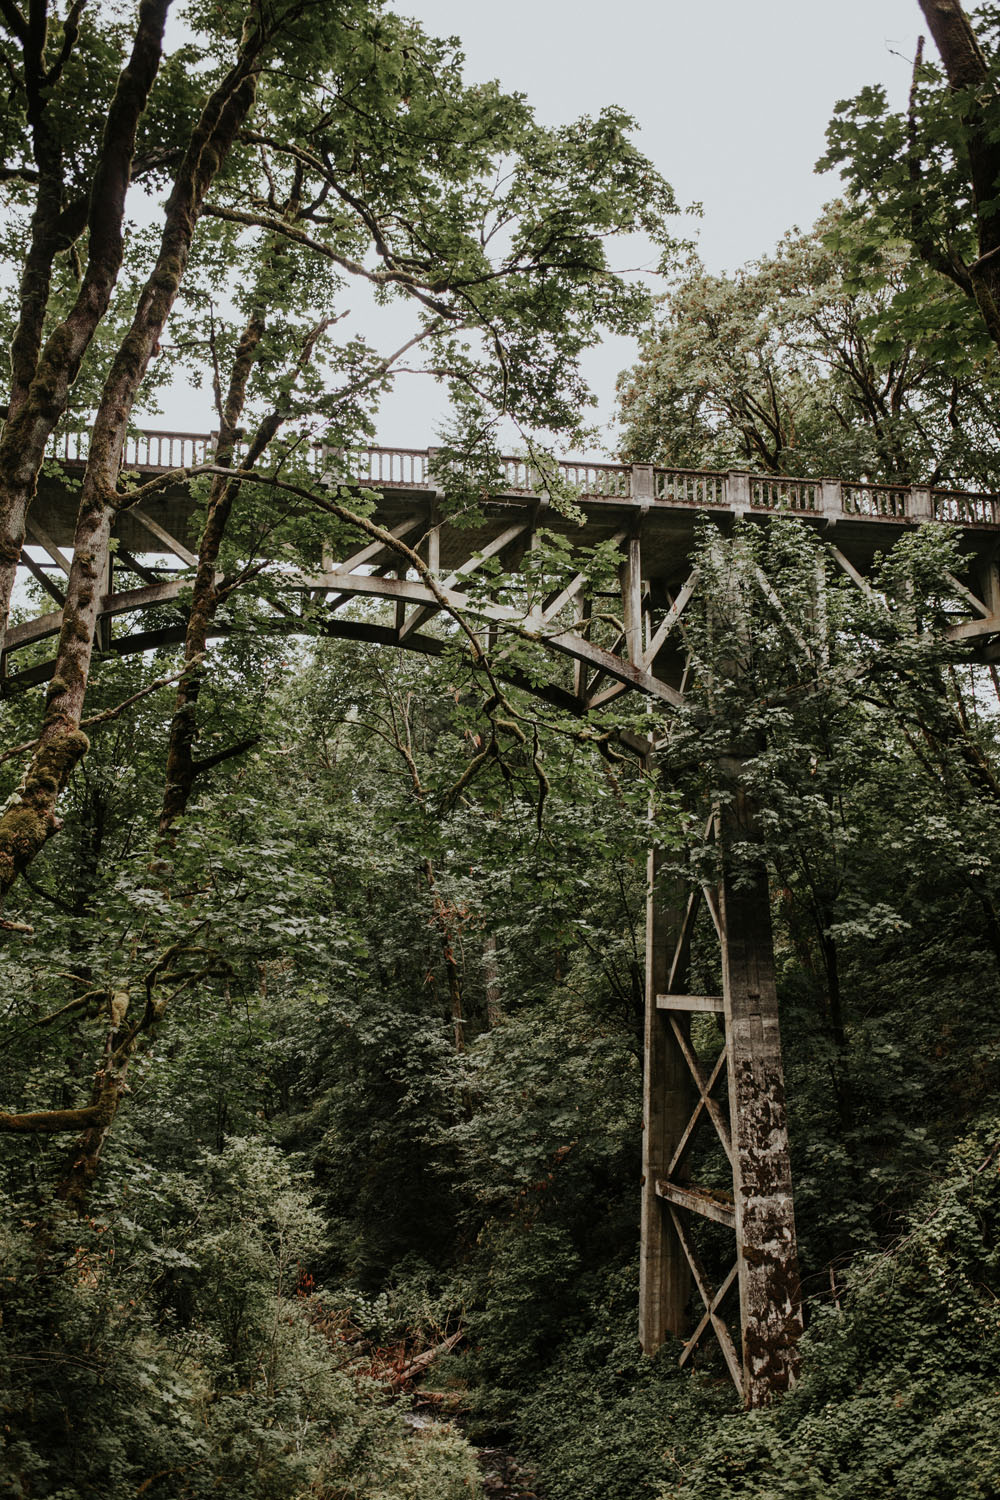 destination wedding photographers atlanta engagment photographer elopement photography oregon Latourell Bridal Veil Multnomah falls 0057.jpg